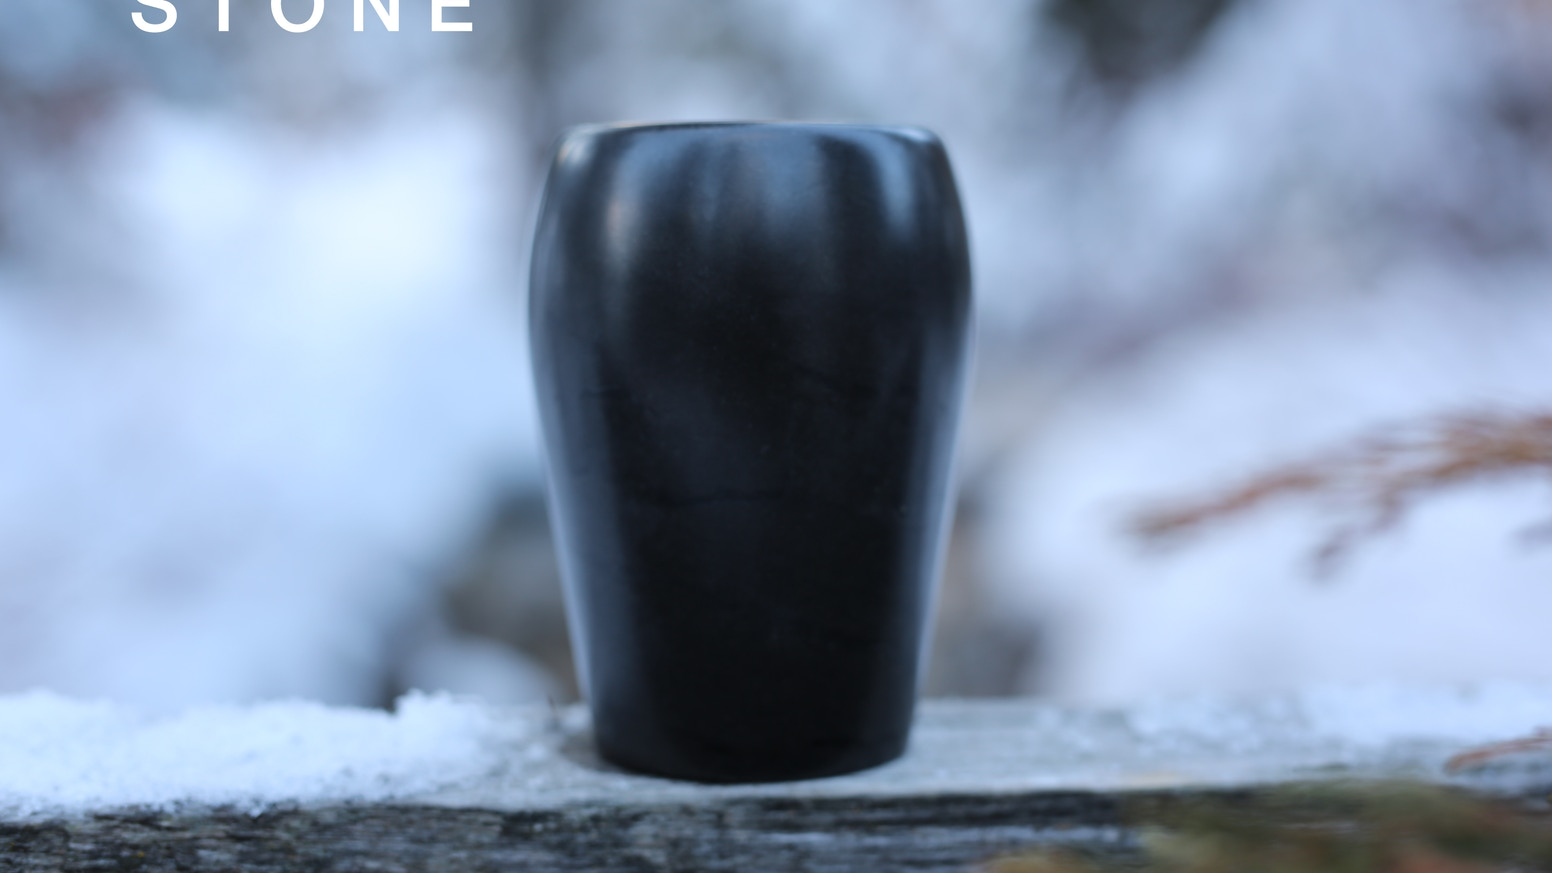 The Stone Cup is no longer available for purchase. Please check the most recent update to resolve any order issues/concerns.